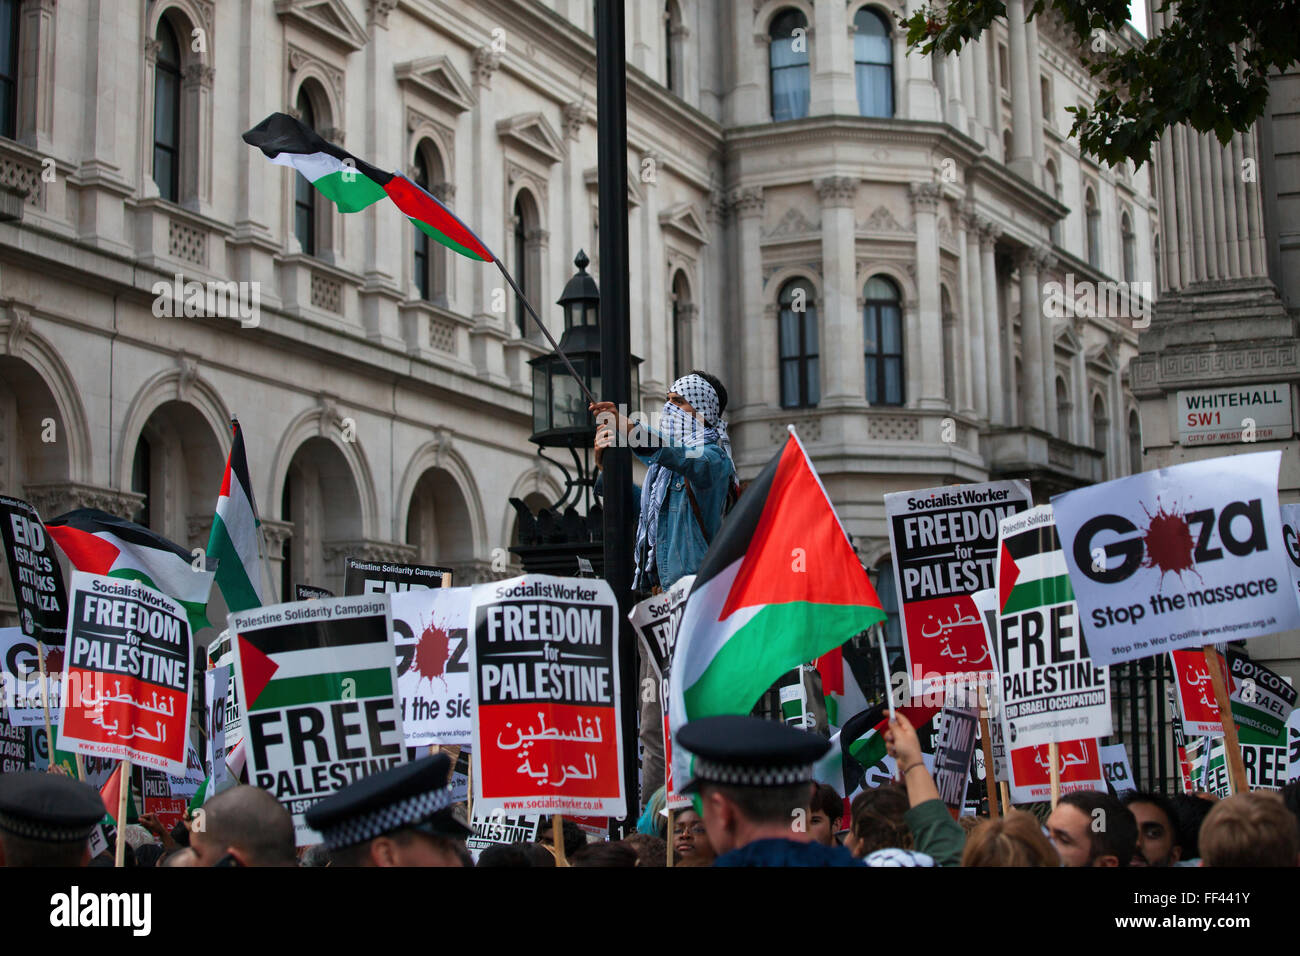 A protester raises the Palestinian flag at a free Gaza demonstration in London - Stock Image